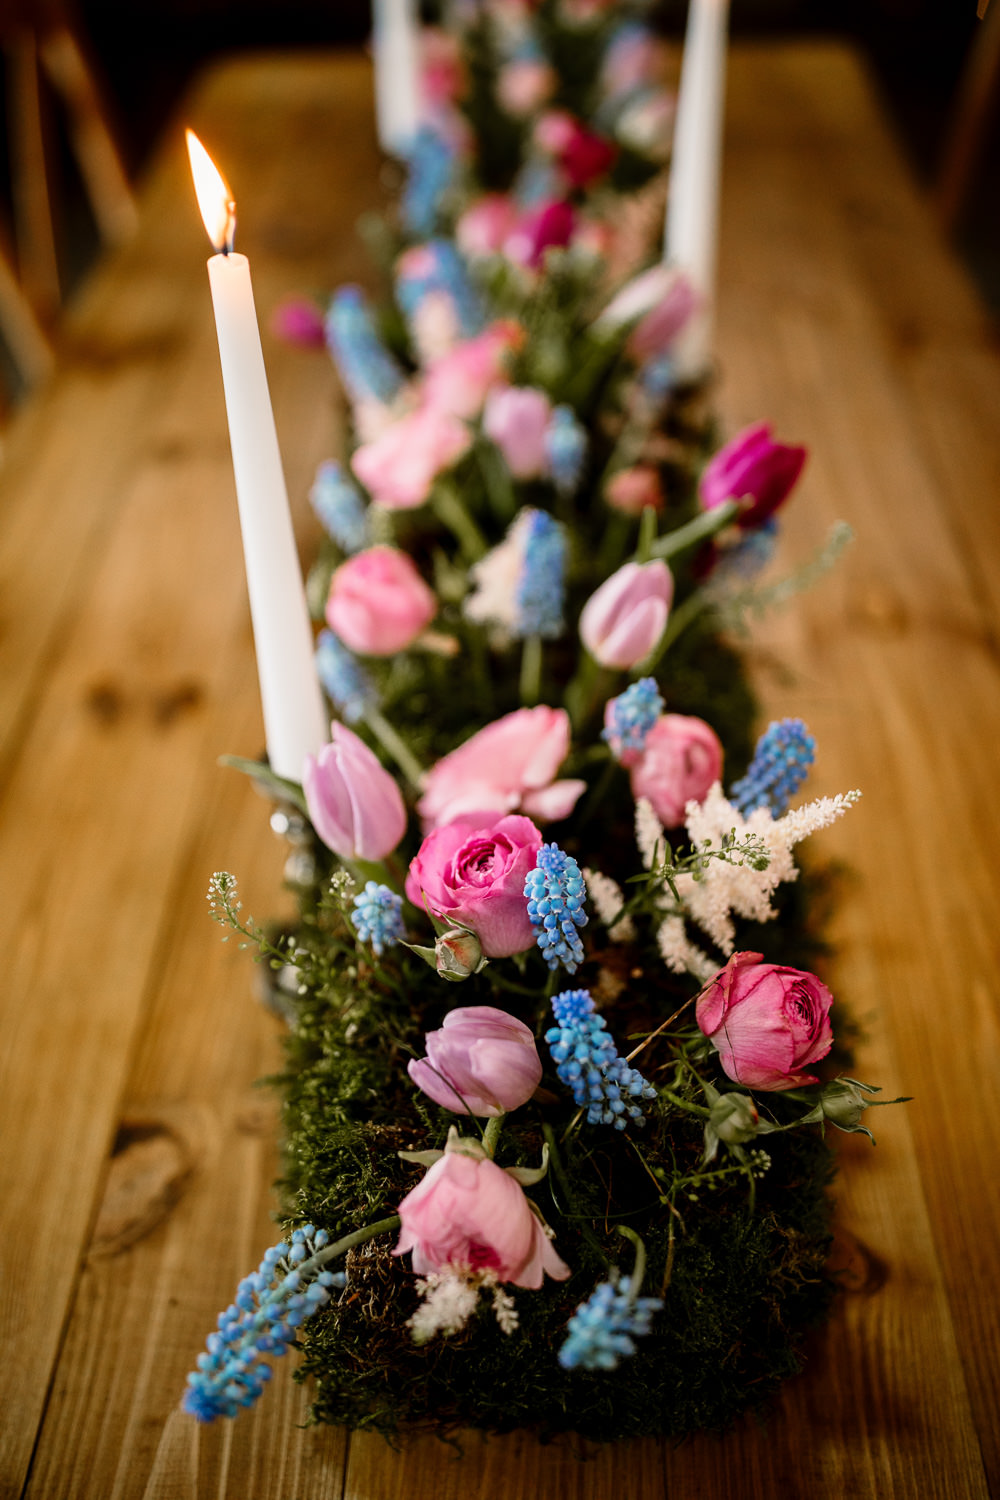 Table Flowers Candles Tablescape Spring Tulips Grape Hyacinths Moss Blossom Barn Wedding Ideas Hayley Baxter Photography